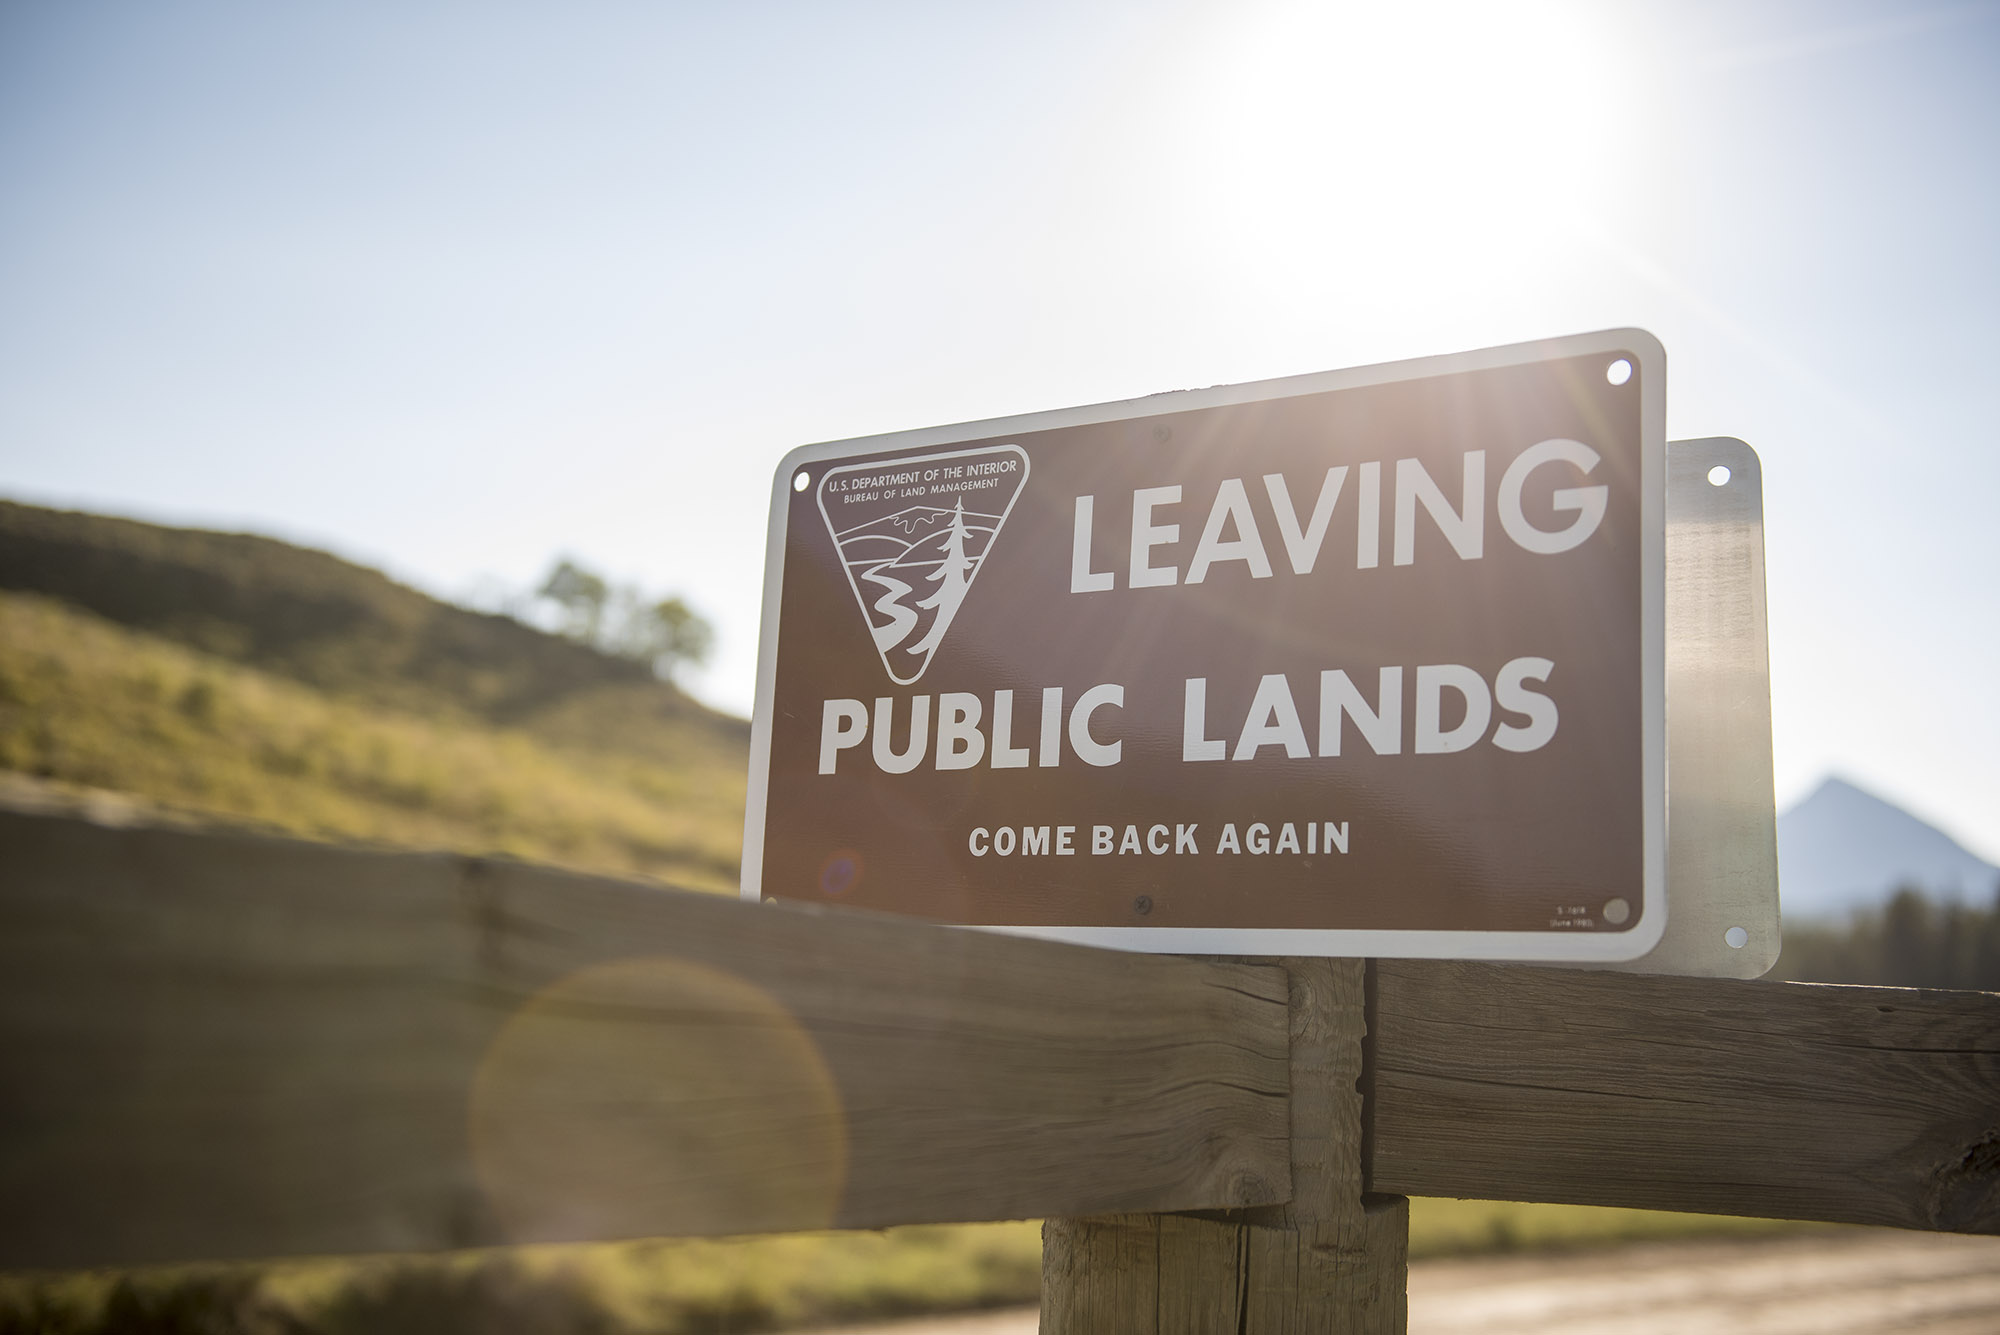 Now leaving public lands